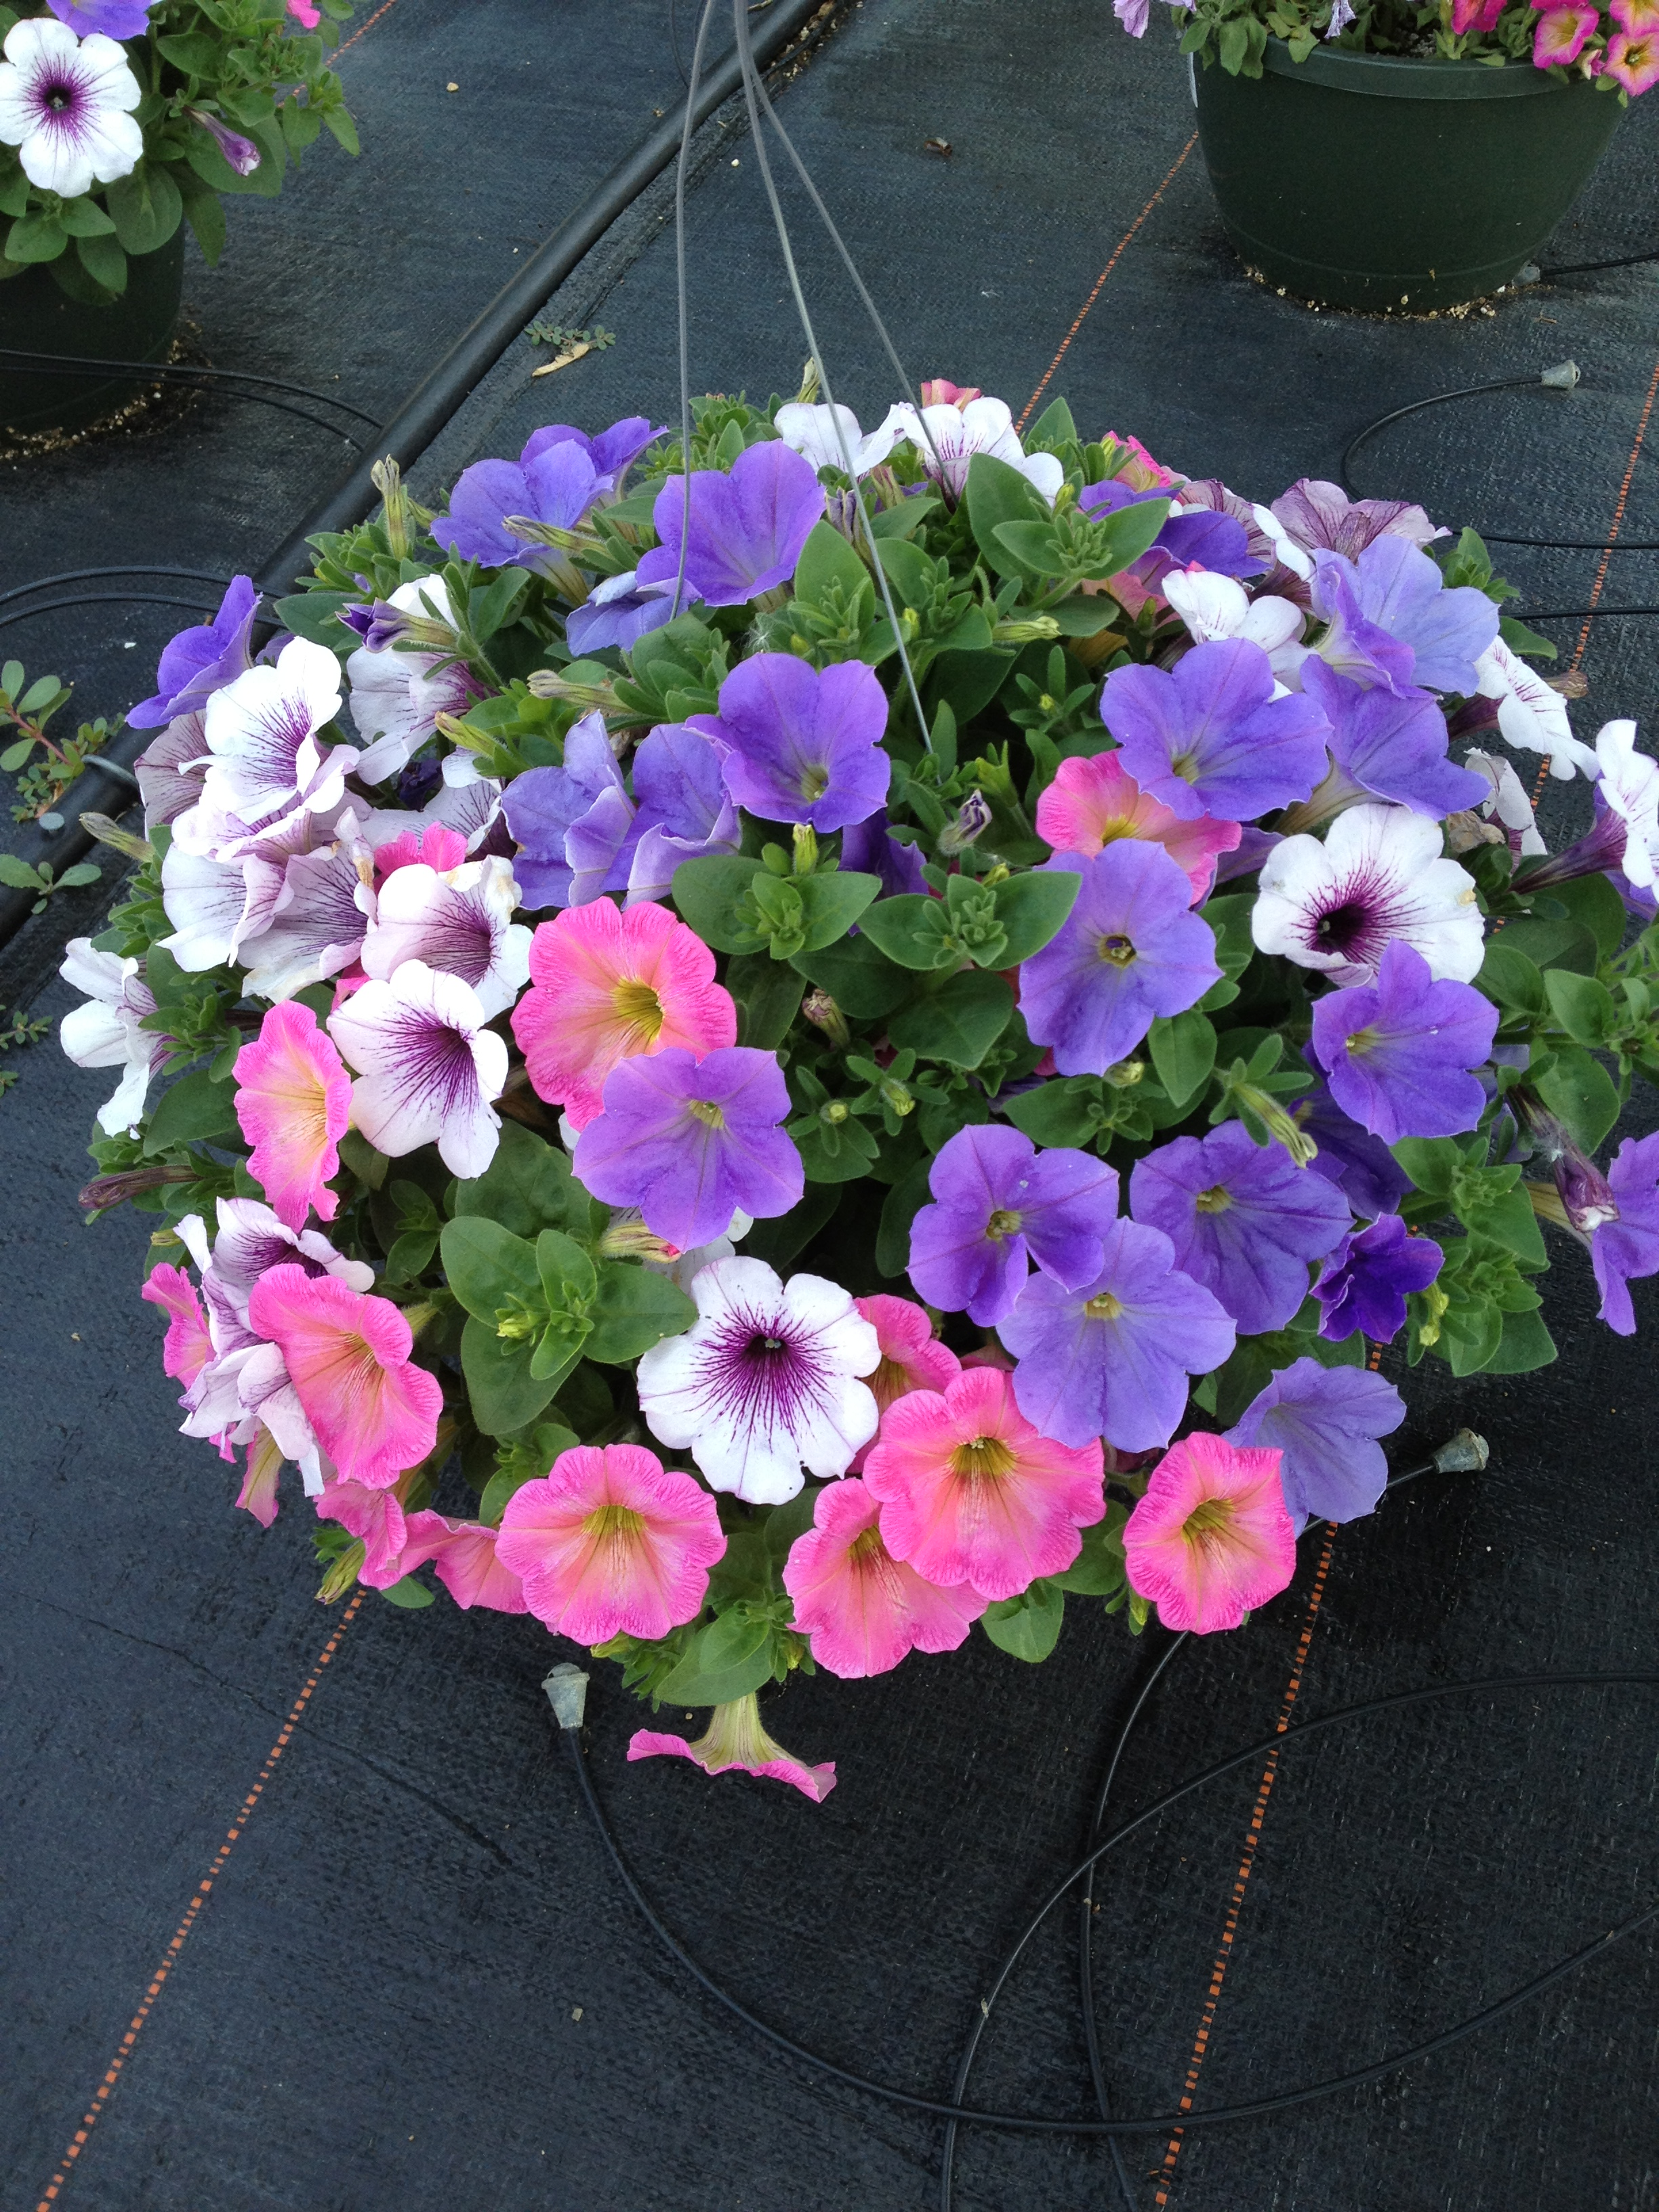 """Petunias add beautiful color in a variety of colors in a full sun environment. Awesome in planters, baskets, and bedding. It truly is one of the most beautiful and versatile spring annual on the market and it popularity over the years has proven this time and time again. Petunias are featured in 4.5"""", 8"""" and 12"""" sun combo planters, 10"""" and 12"""" hanging baskets, and 16"""" grapevine baskets."""